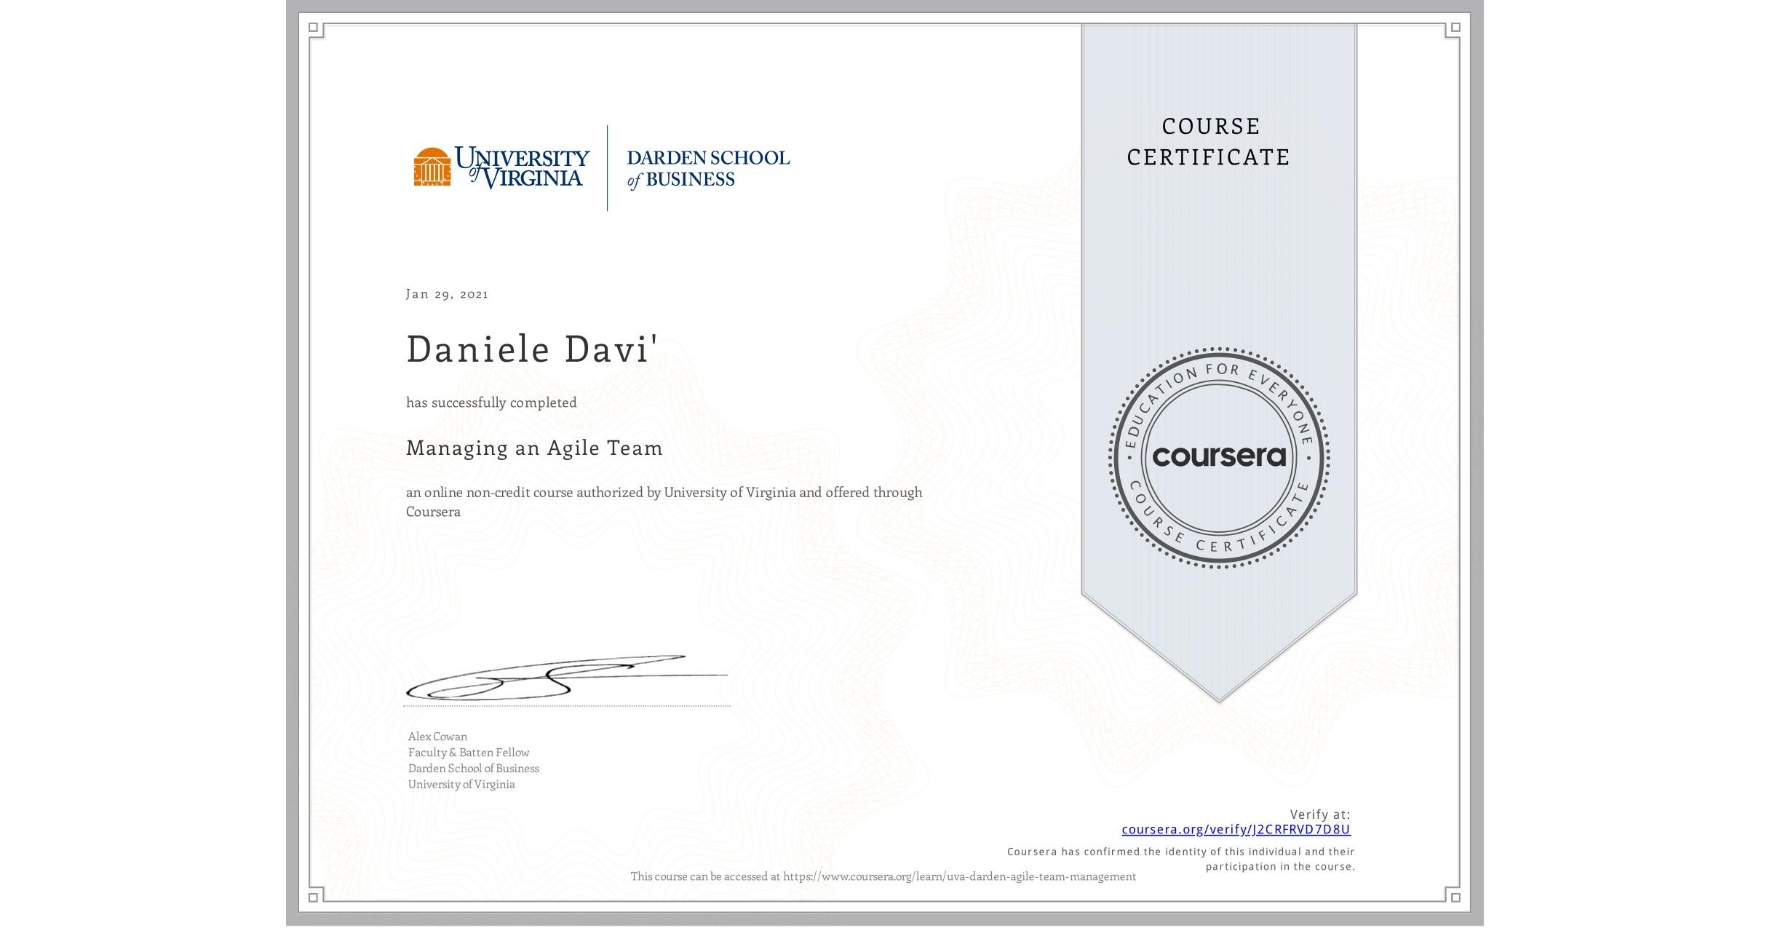 View certificate for Daniele Davi', Managing an Agile Team, an online non-credit course authorized by University of Virginia and offered through Coursera